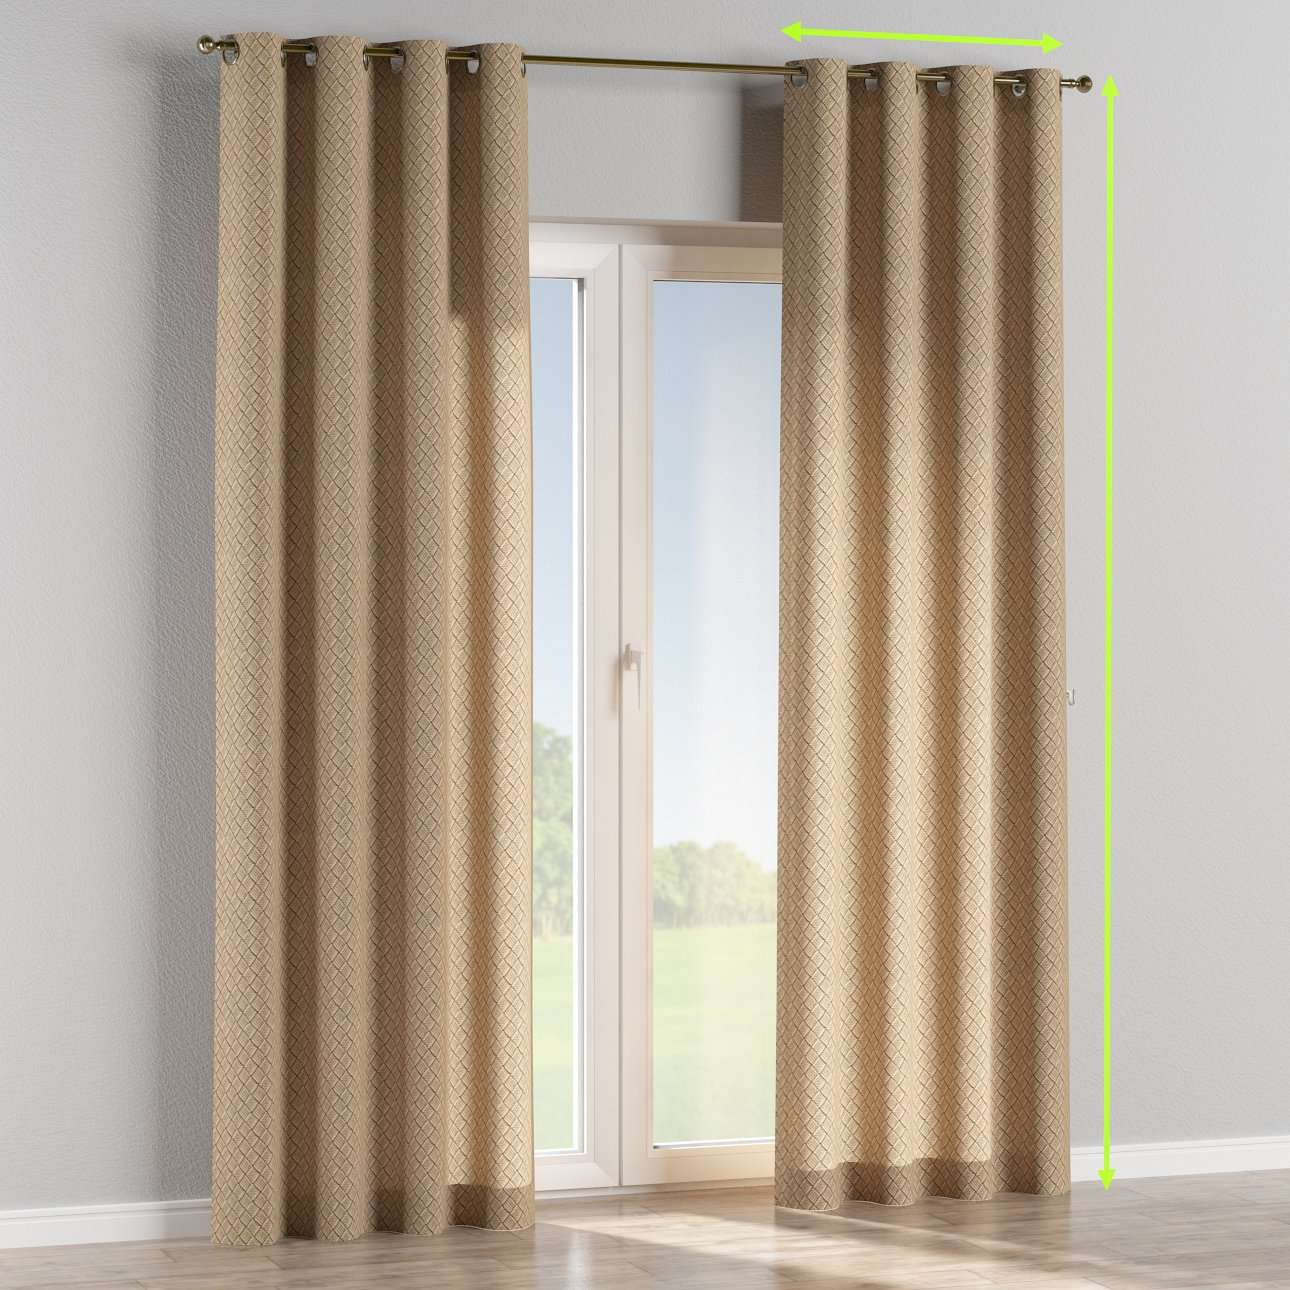 Eyelet lined curtains in collection Marina, fabric: 140-17